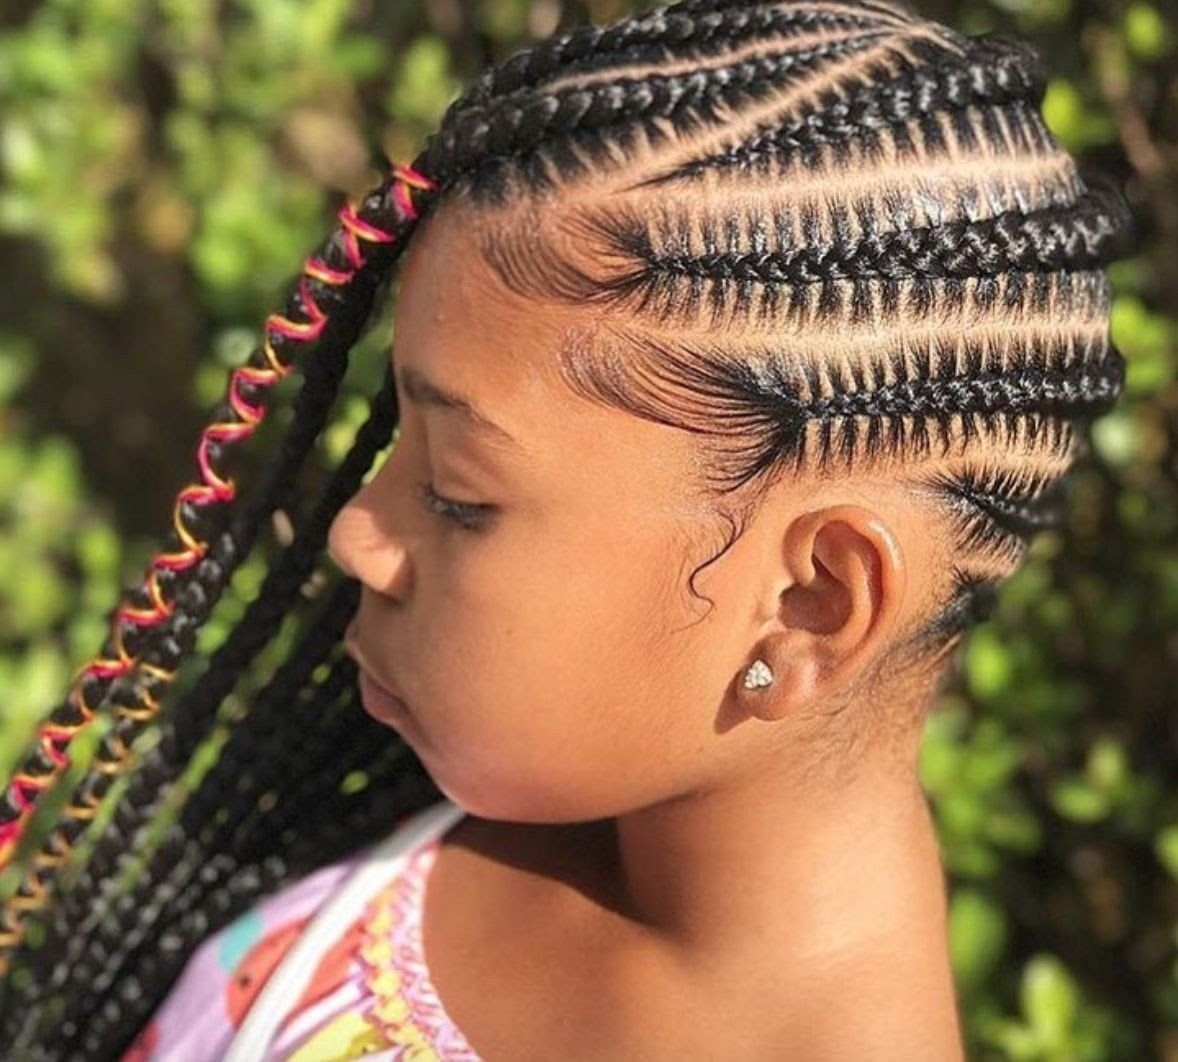 Pin by Vanessa Mosley on Cute Kid Hairstyles | Kids ...